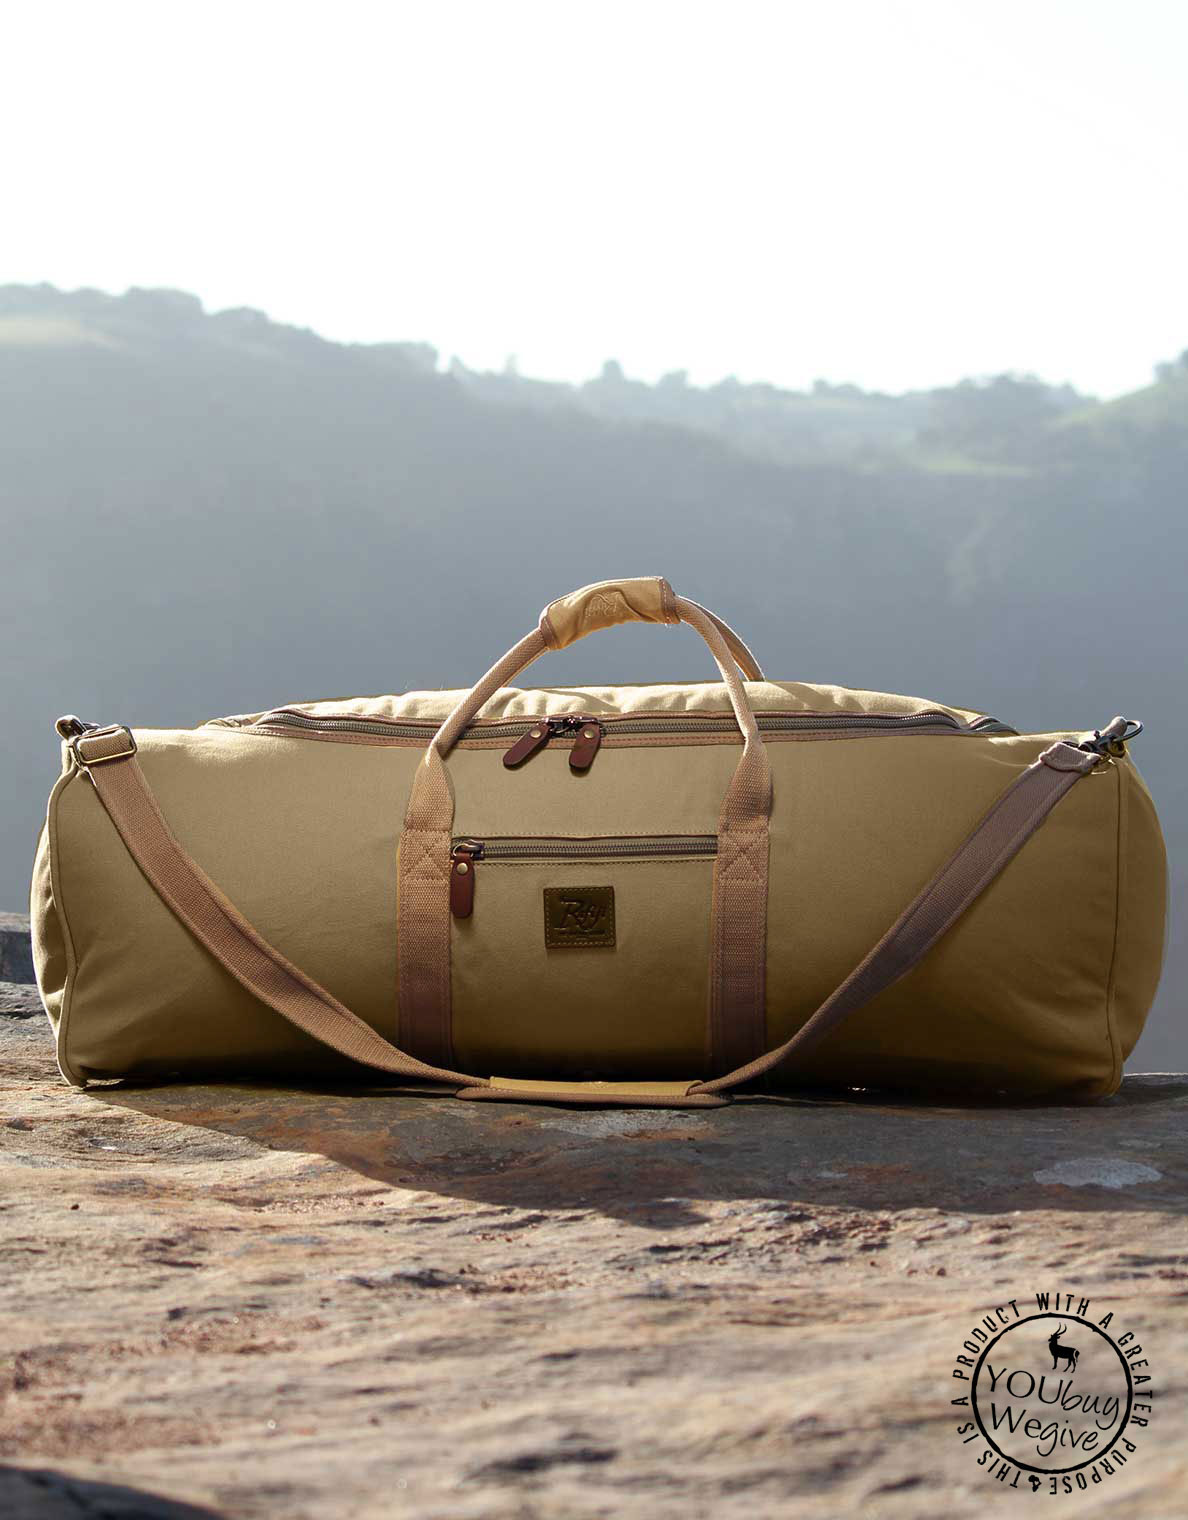 Large holdall to pack your gear in for the Okavango Delta.